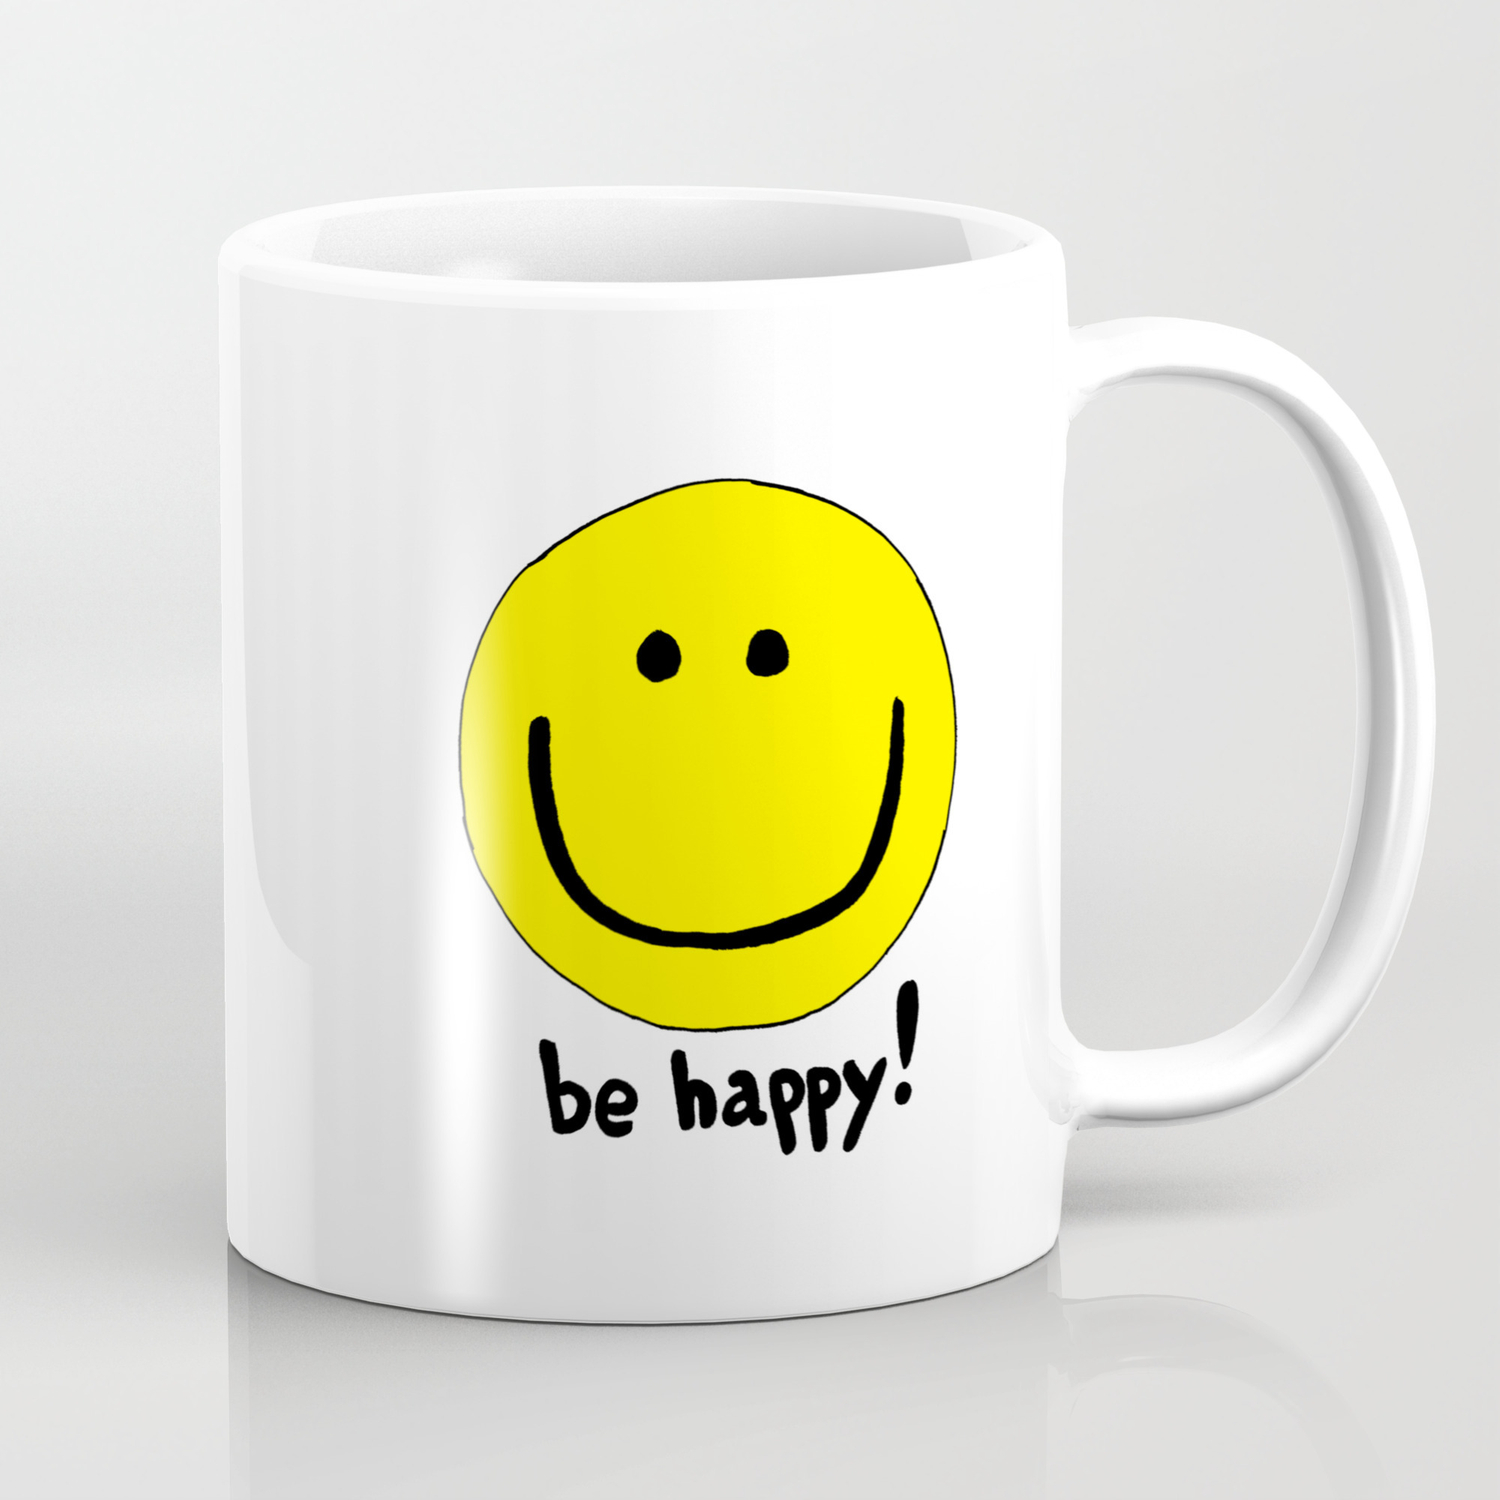 Image result for smiley face mug